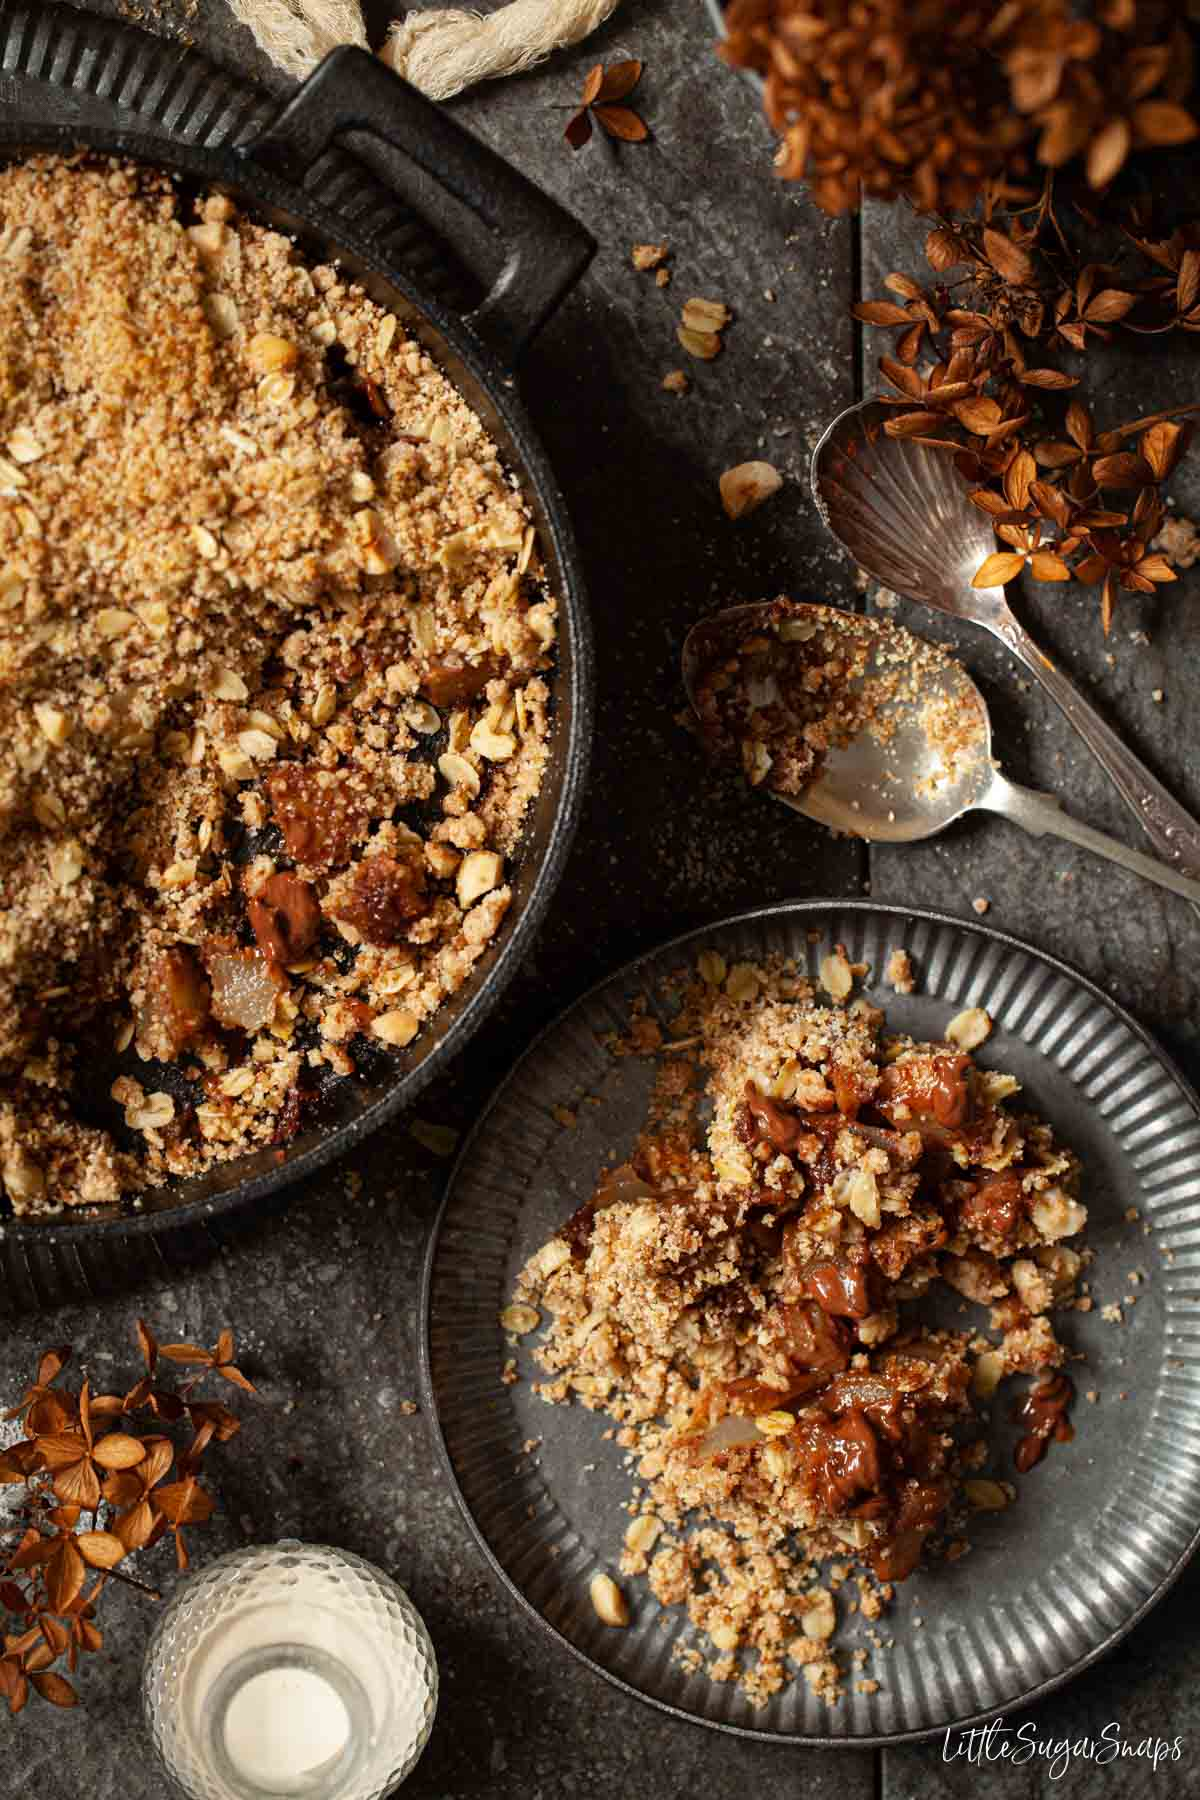 Chocolate and Pear crumble being served from a skillet onto plates